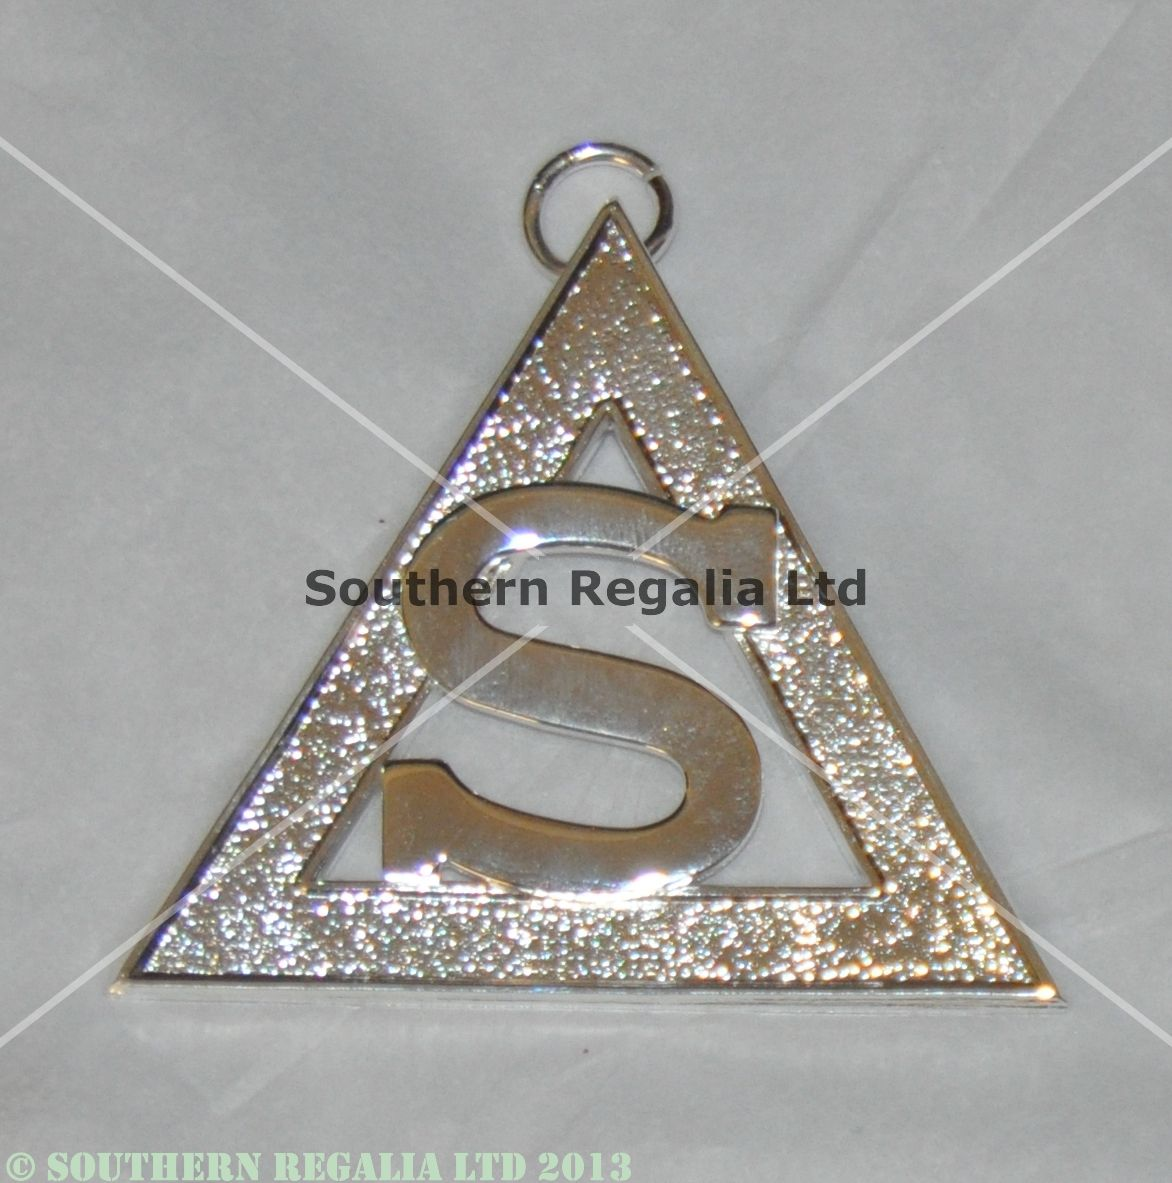 Royal Ark Mariner Lodge Officer Collar Jewel - Junior Warden